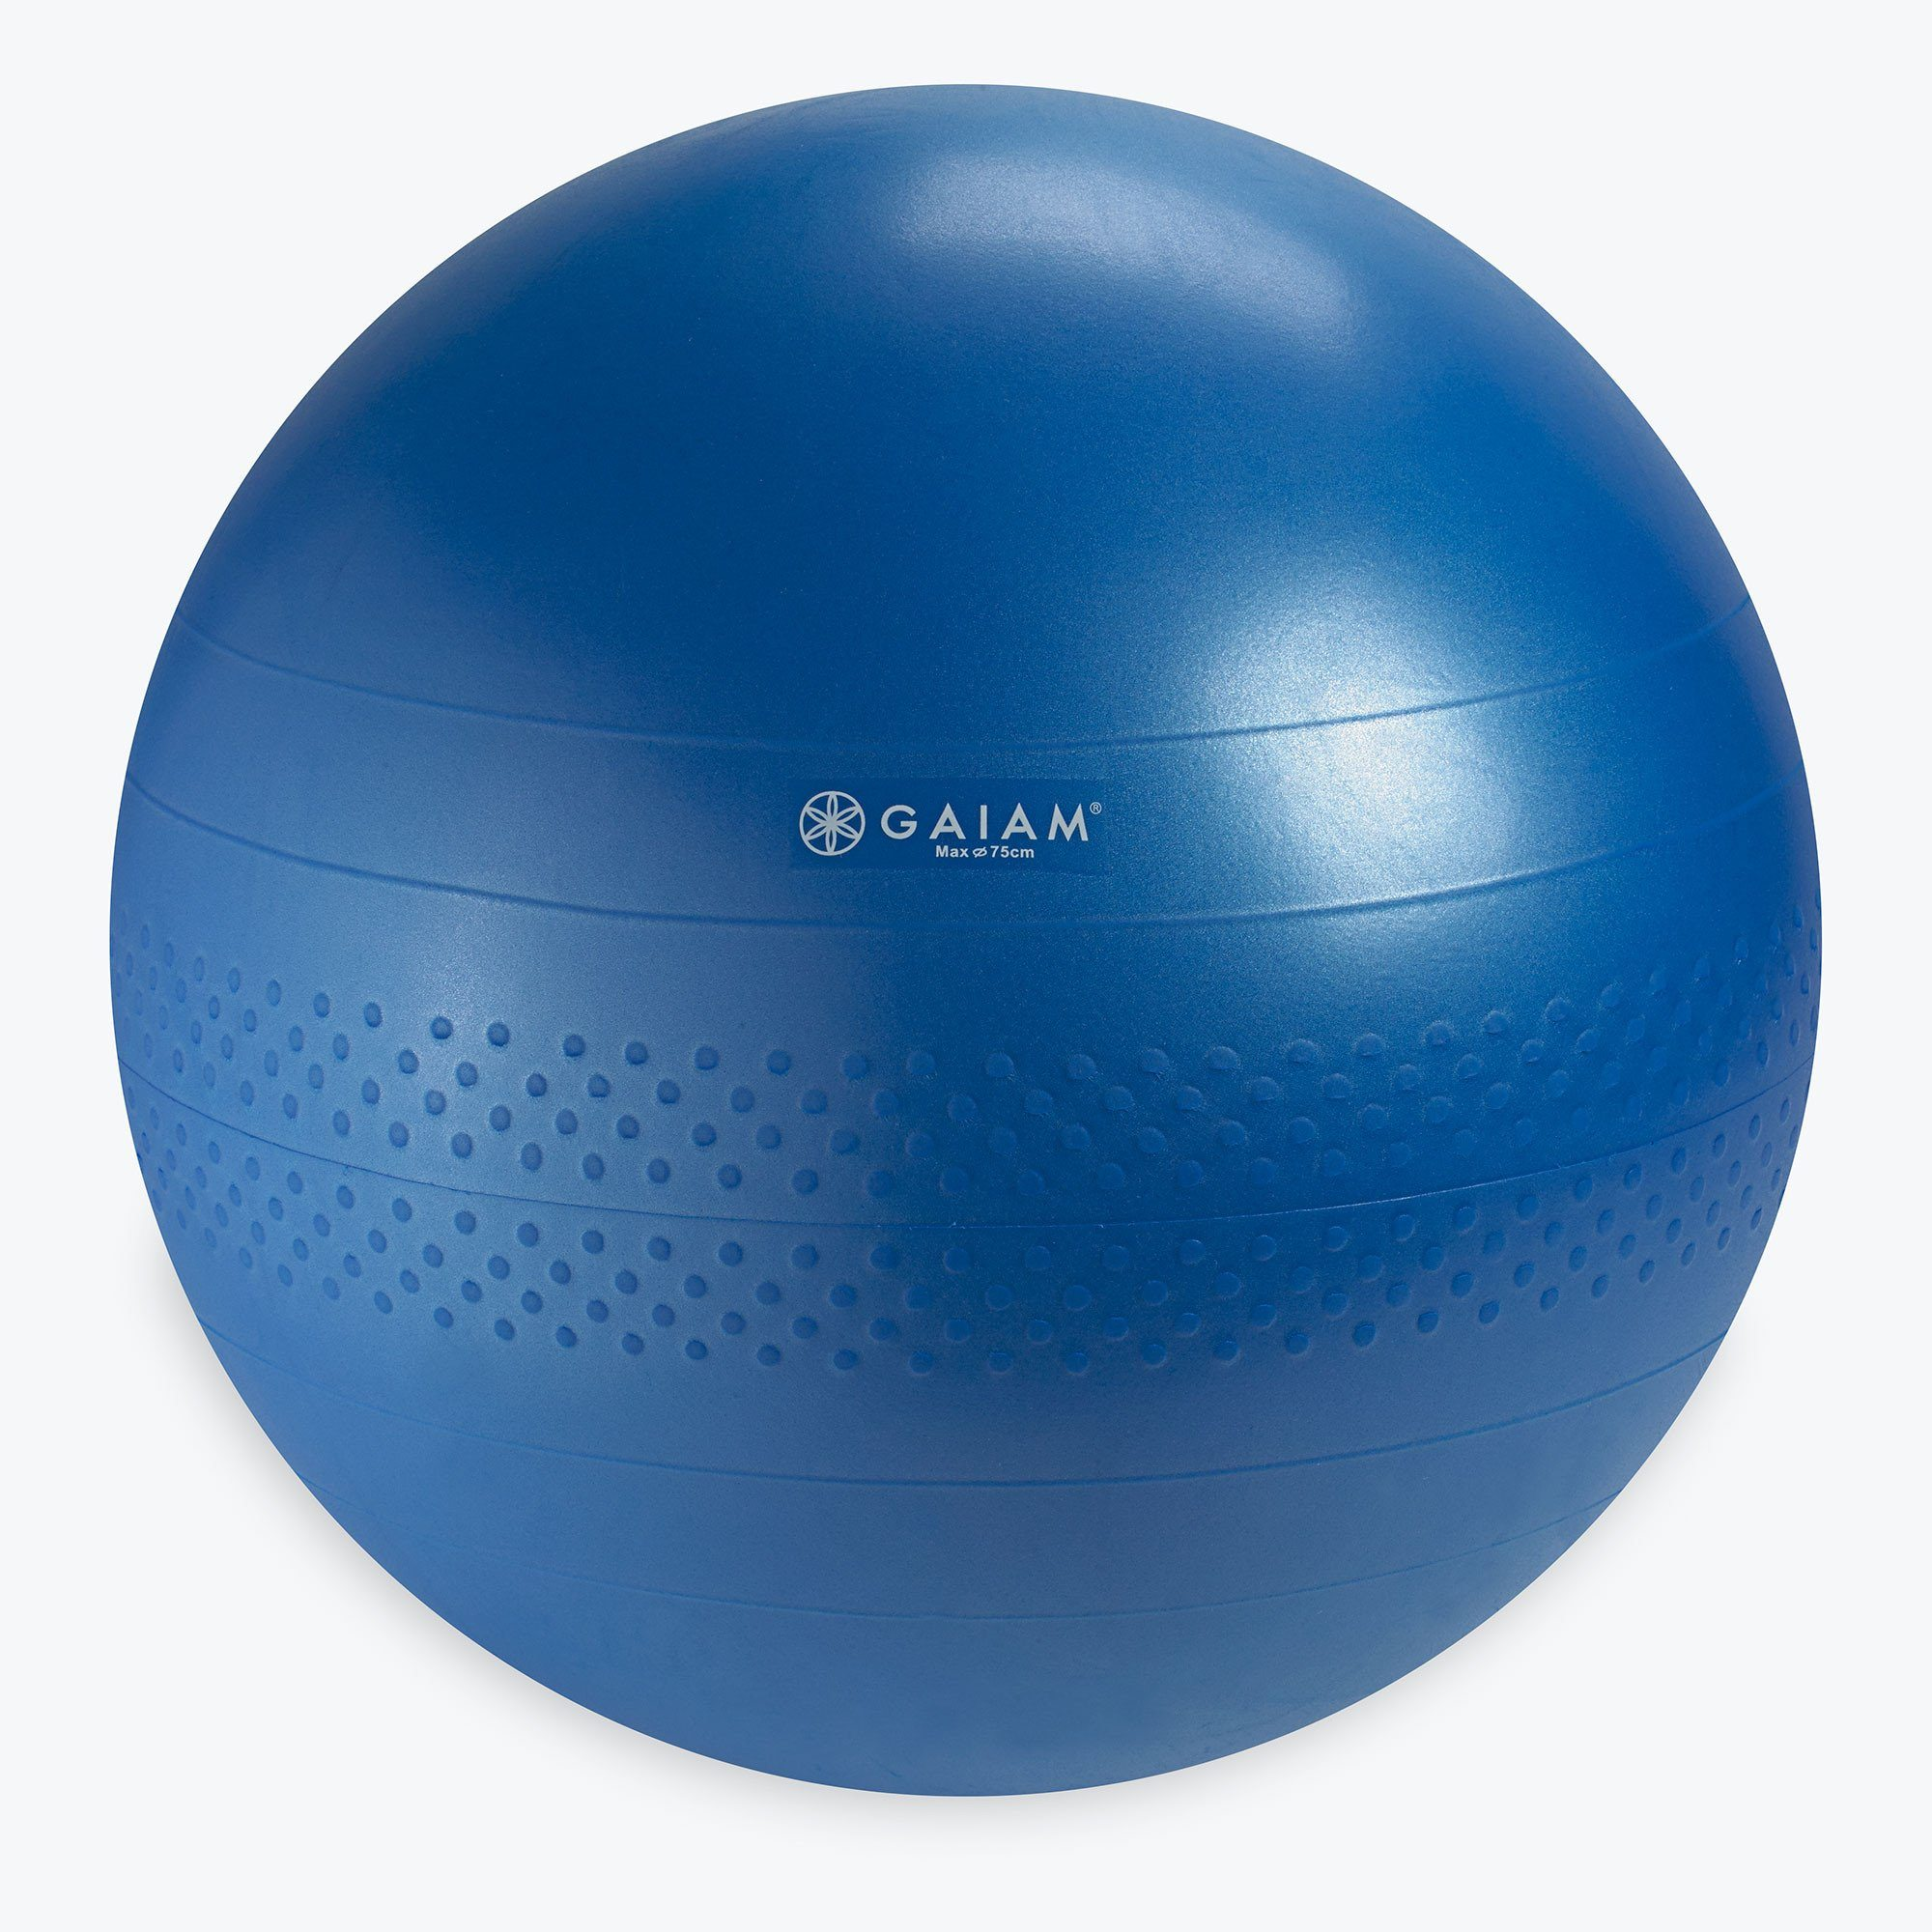 GAIAM Ball Blue